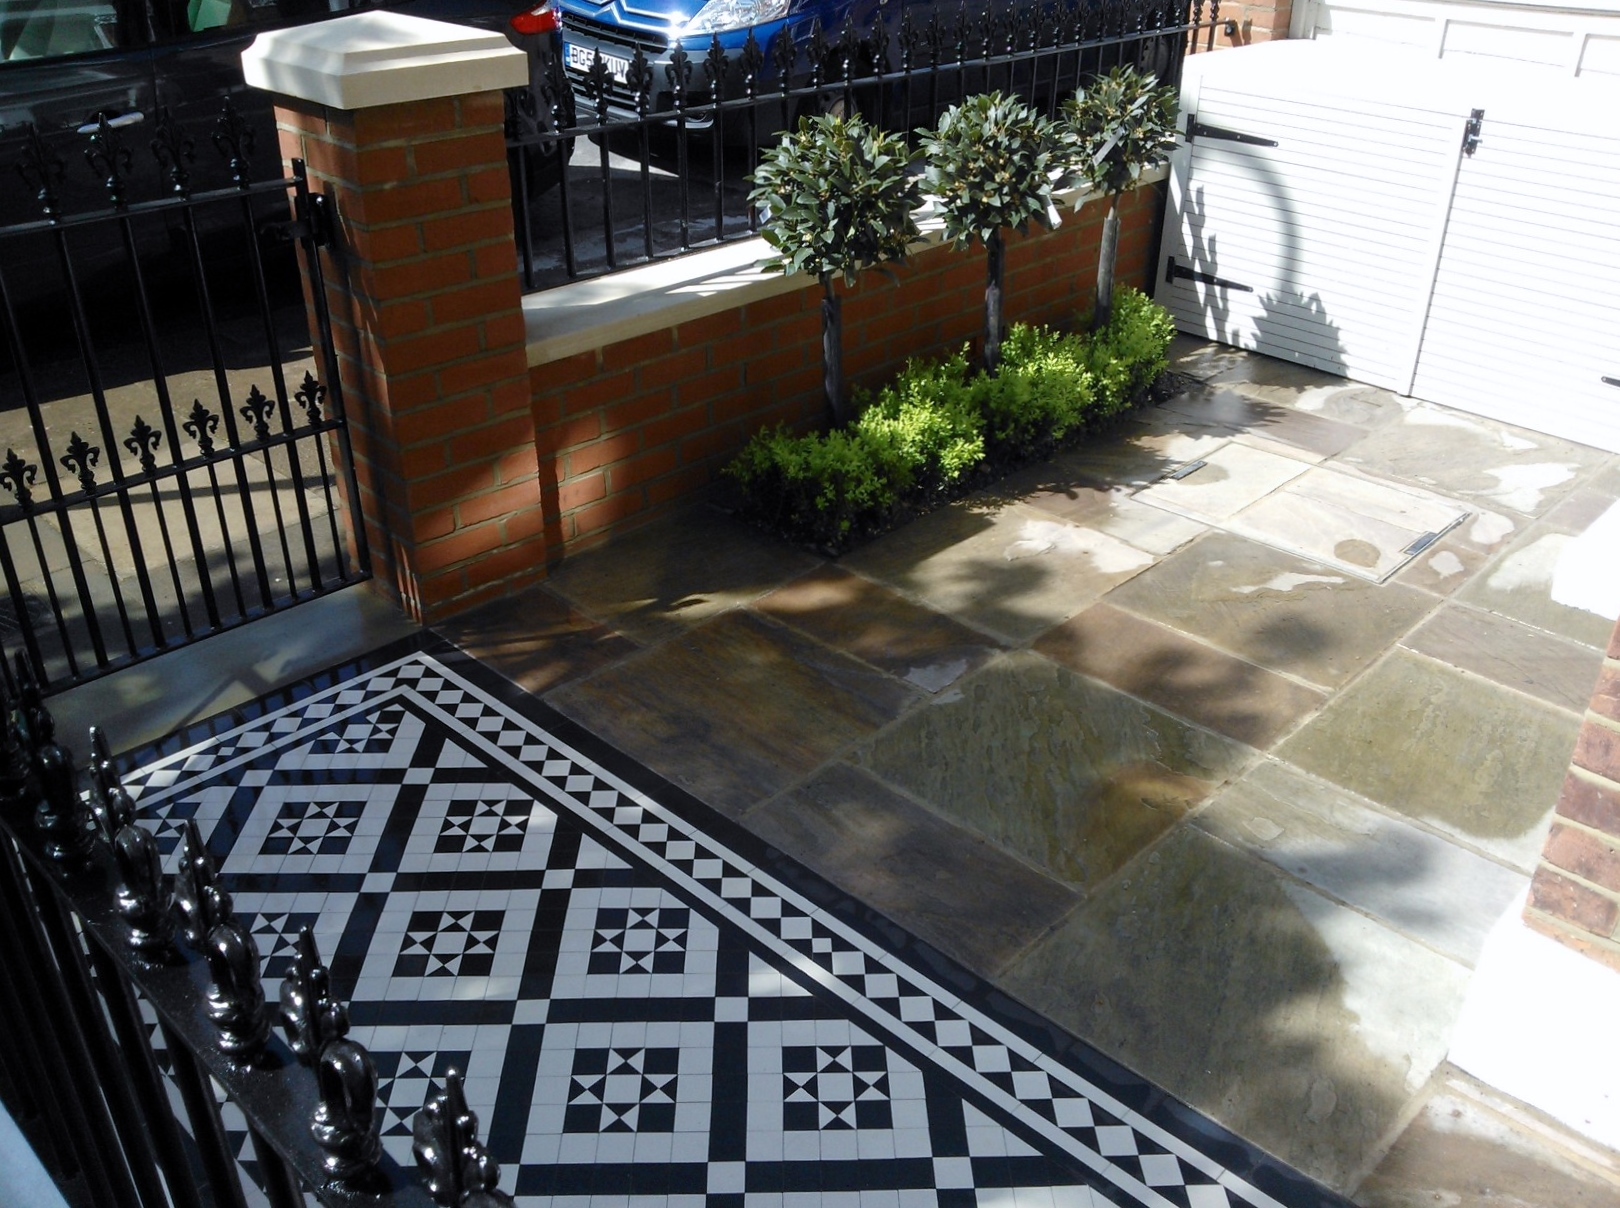 victorian mosaic tile path sandstone paving red brick wall with yorkstone cap bin store and formal planting west london (10)